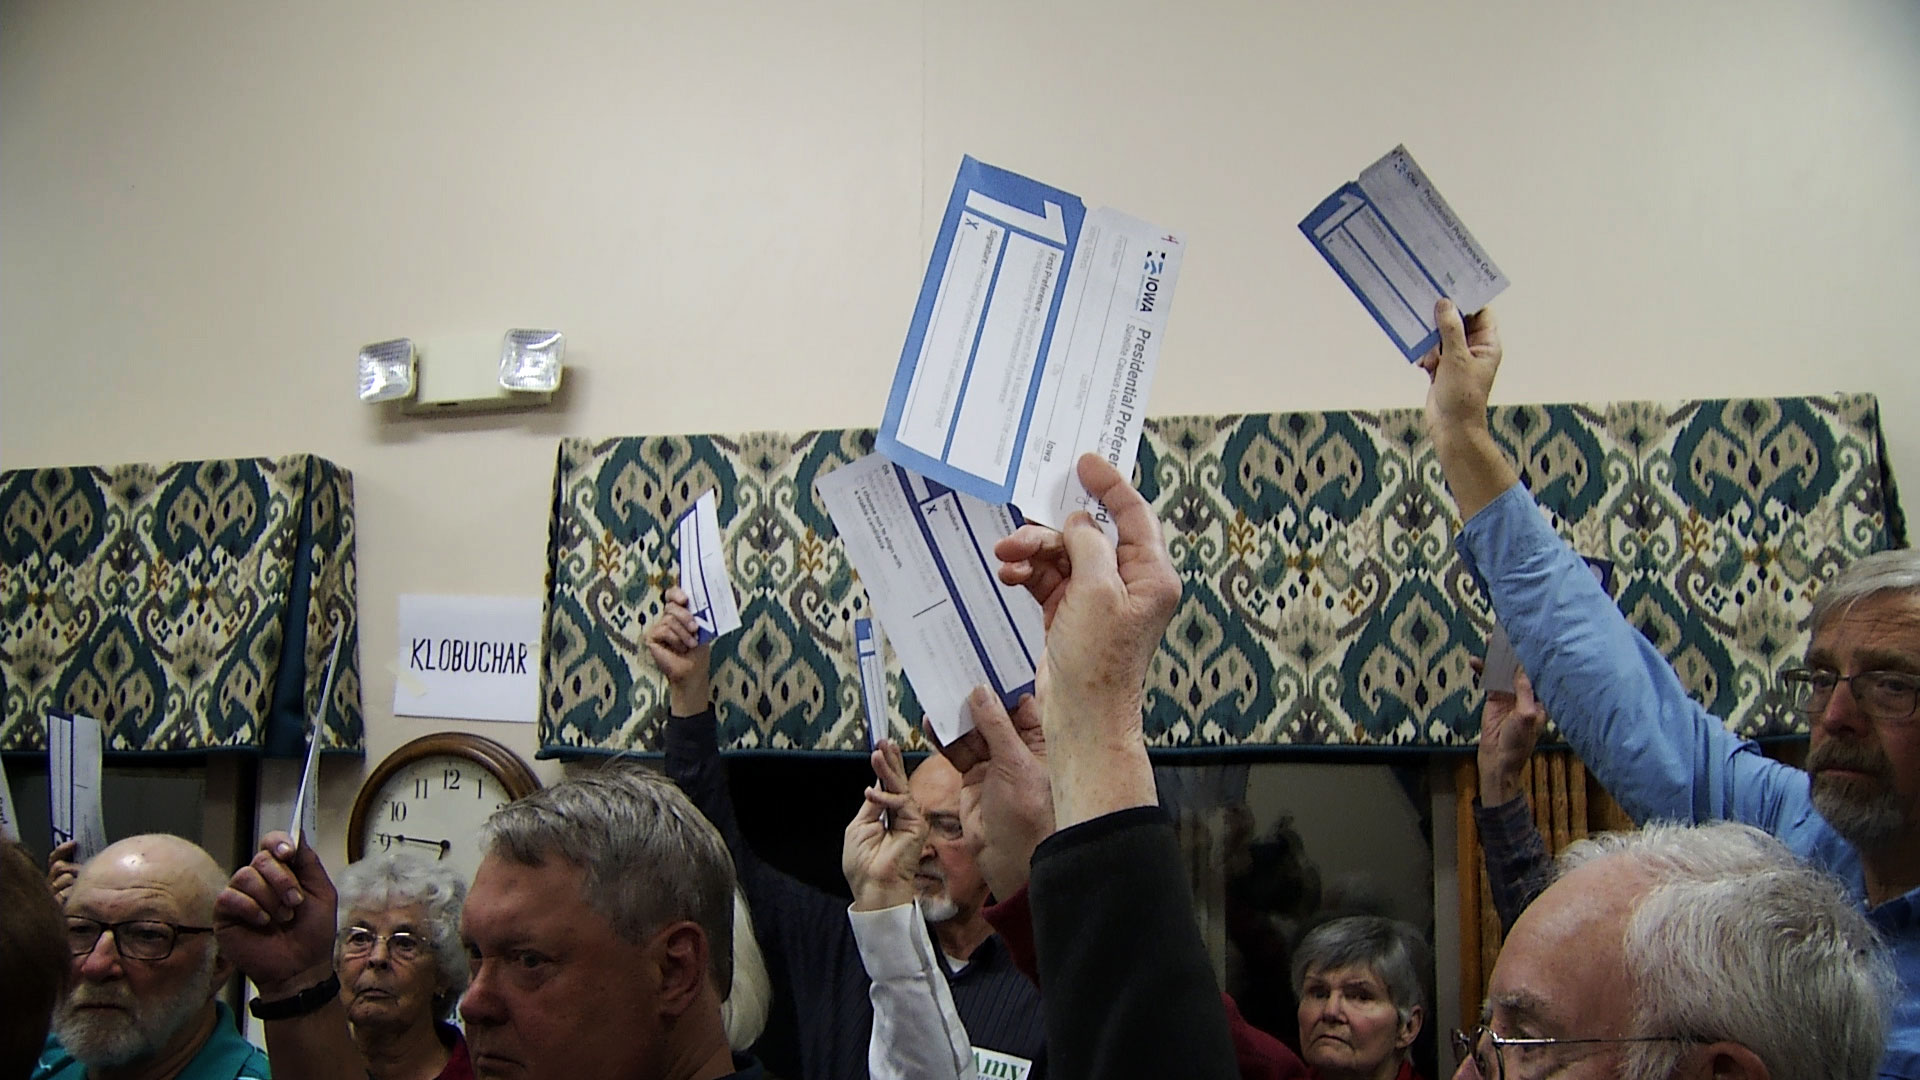 Registered voters from Iowa raise their presidential preference cards in the first alignment of the Democratic Iowa caucus at a satellite location in Green Valley on Feb. 3, 2020.